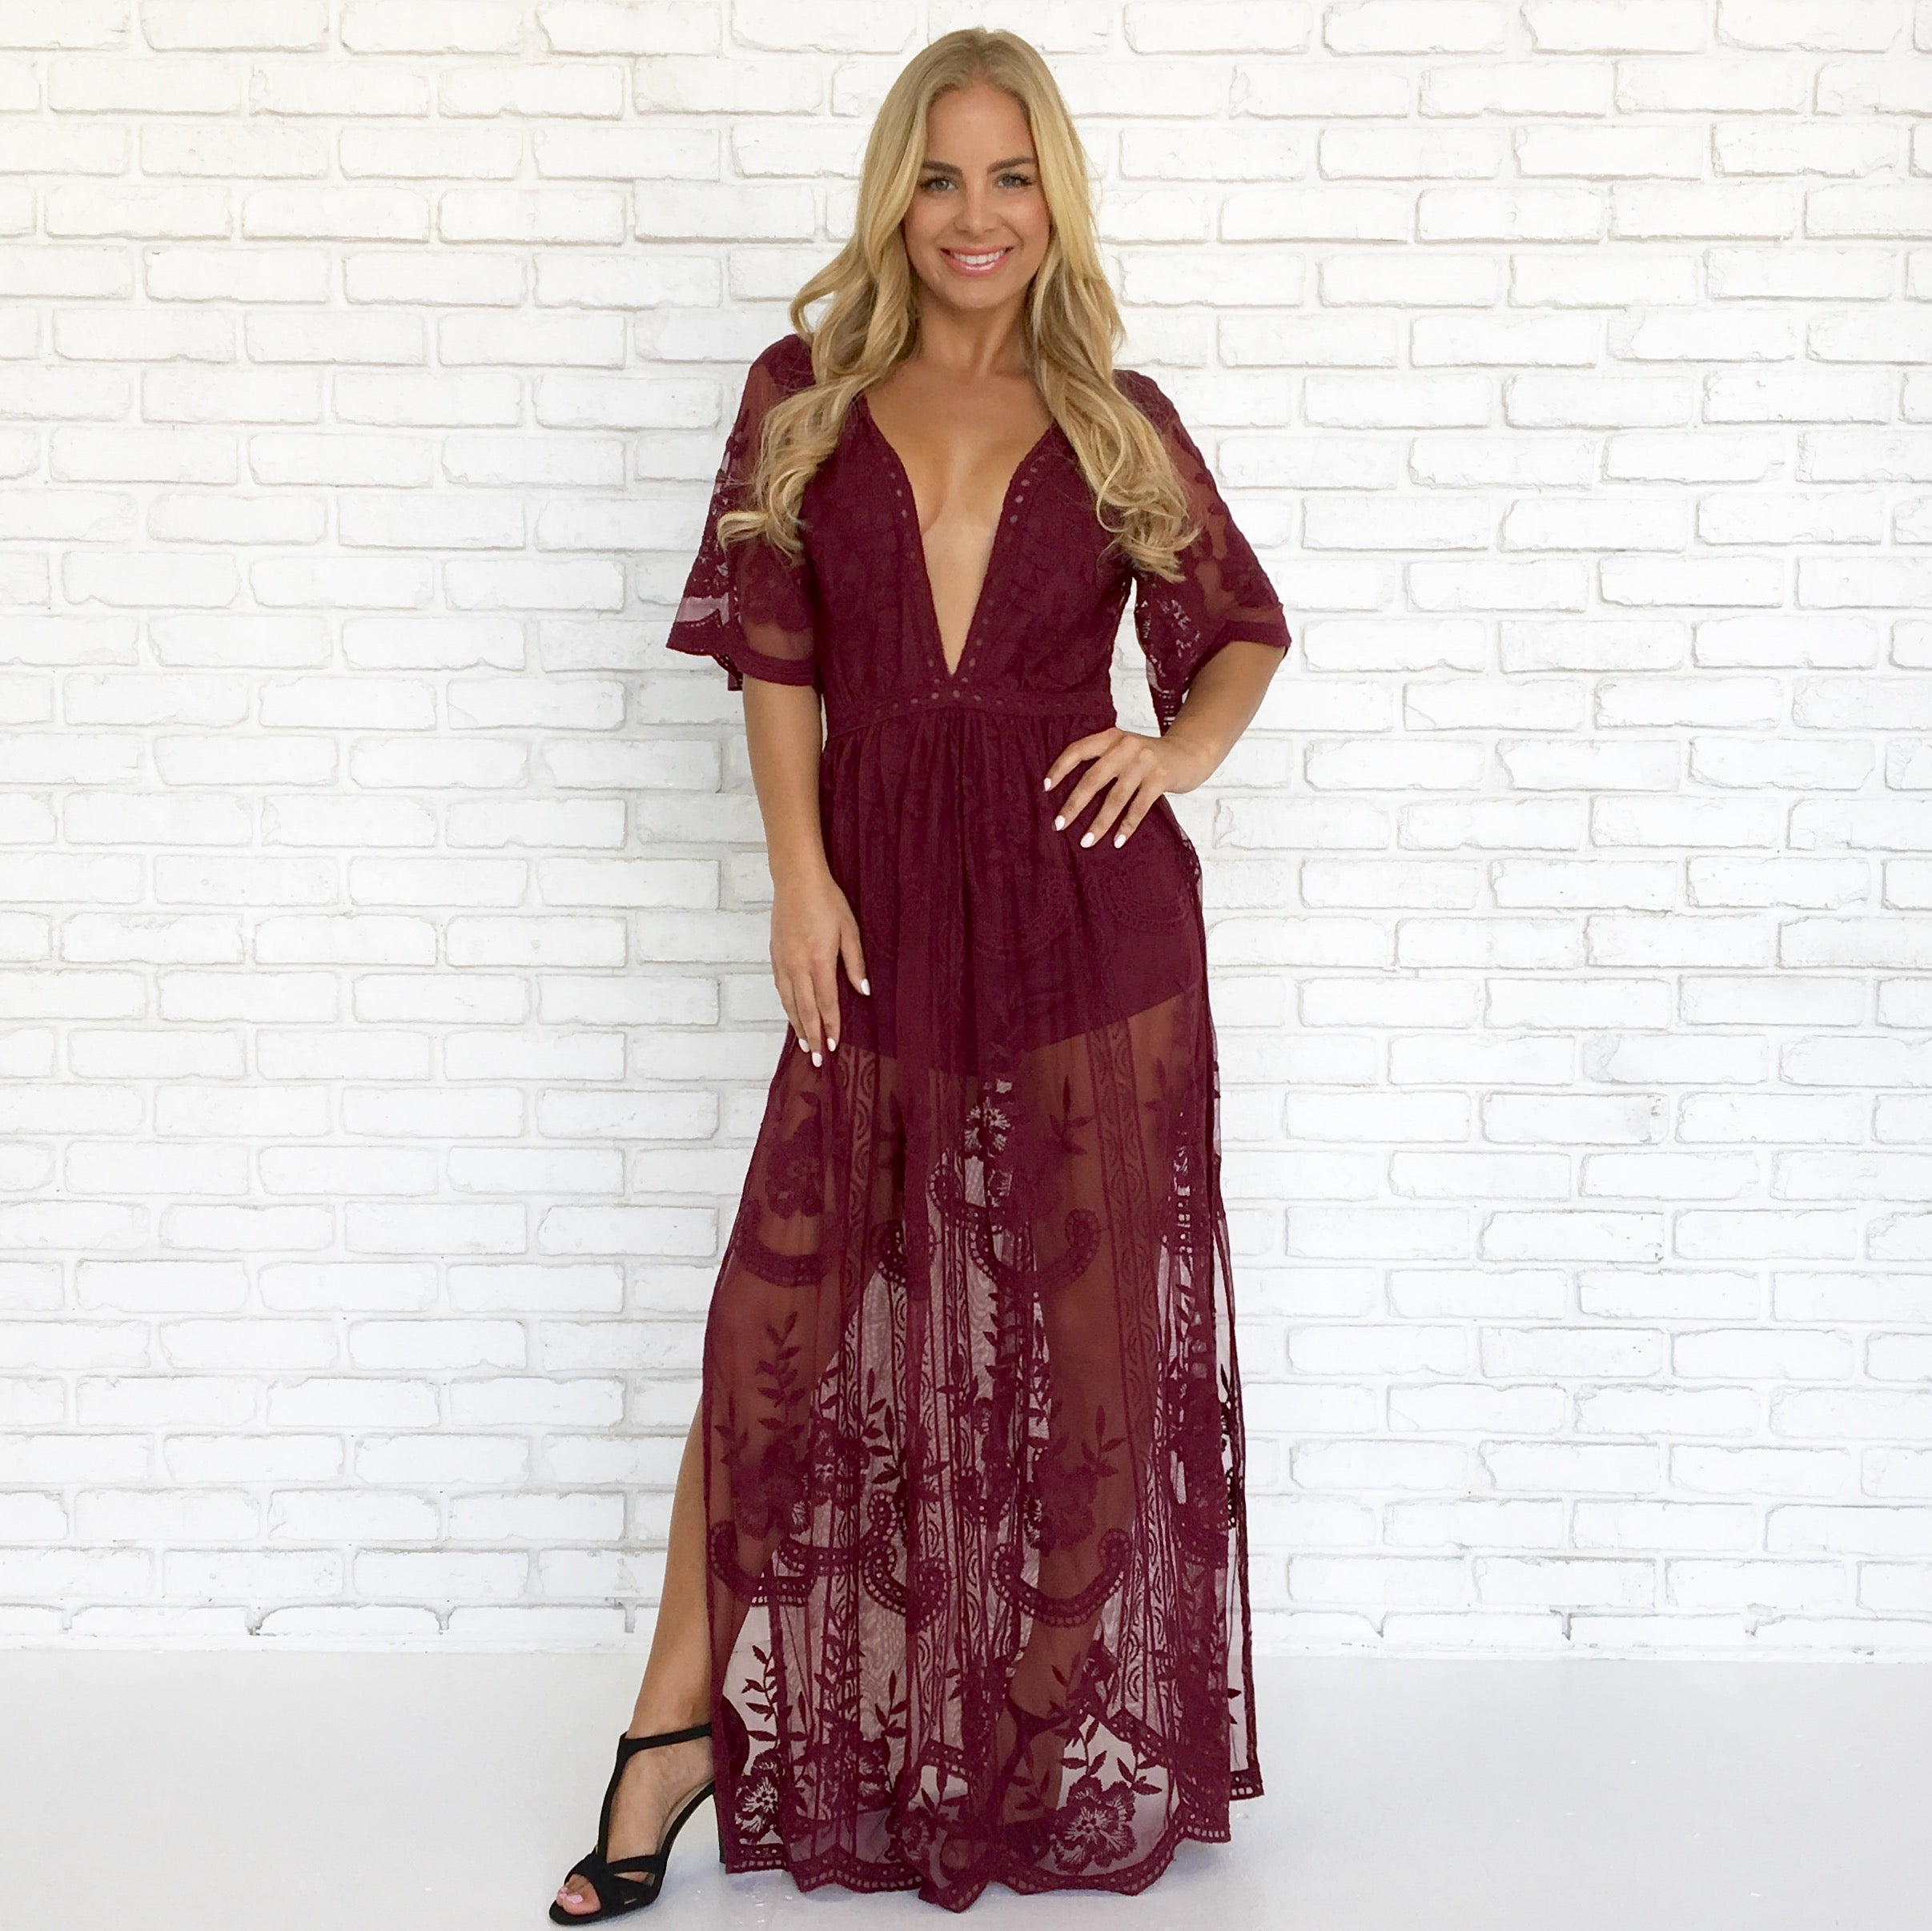 d2865d5cb16 Gift Giving Lace Romper in Burgundy - Dainty Hooligan Boutique